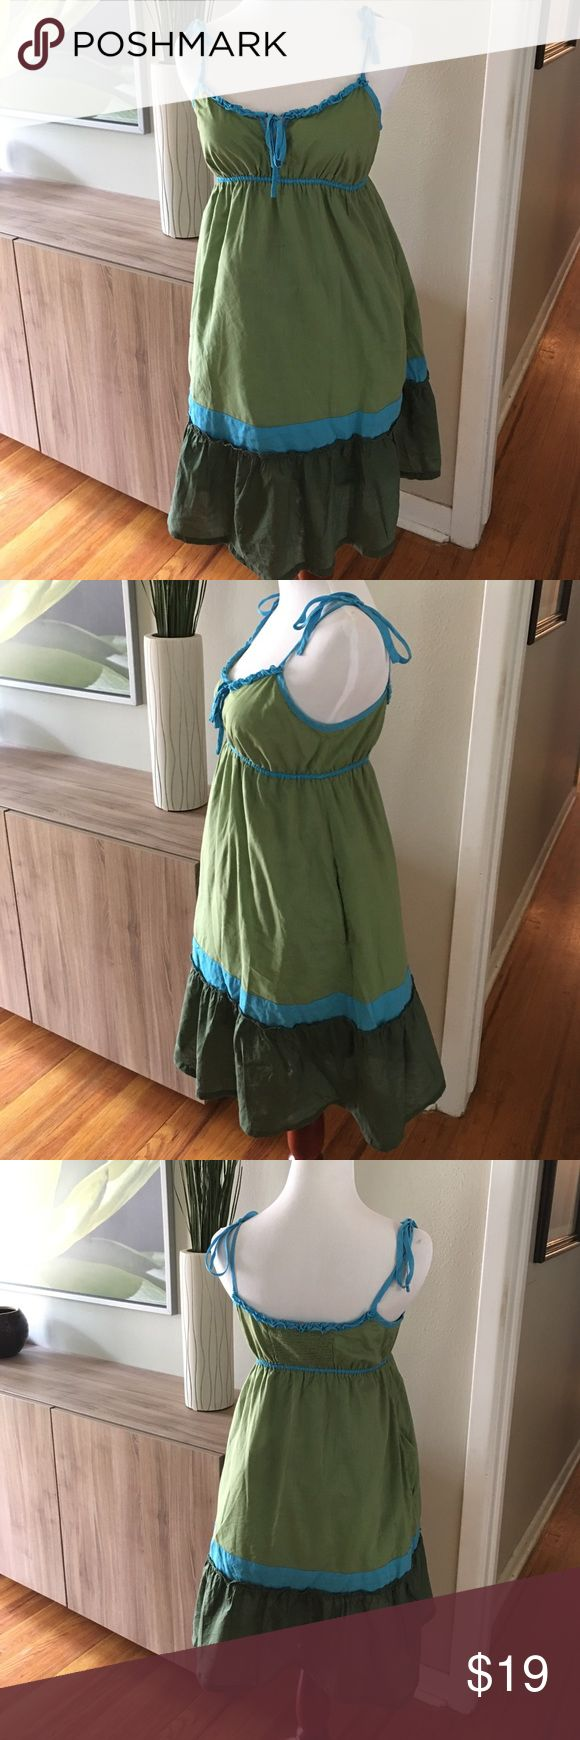 American Eagle dress size 6 Go green this spring with this fun dress size 6. Perfect summer dress. American Eagle Outfitters Dresses Mini